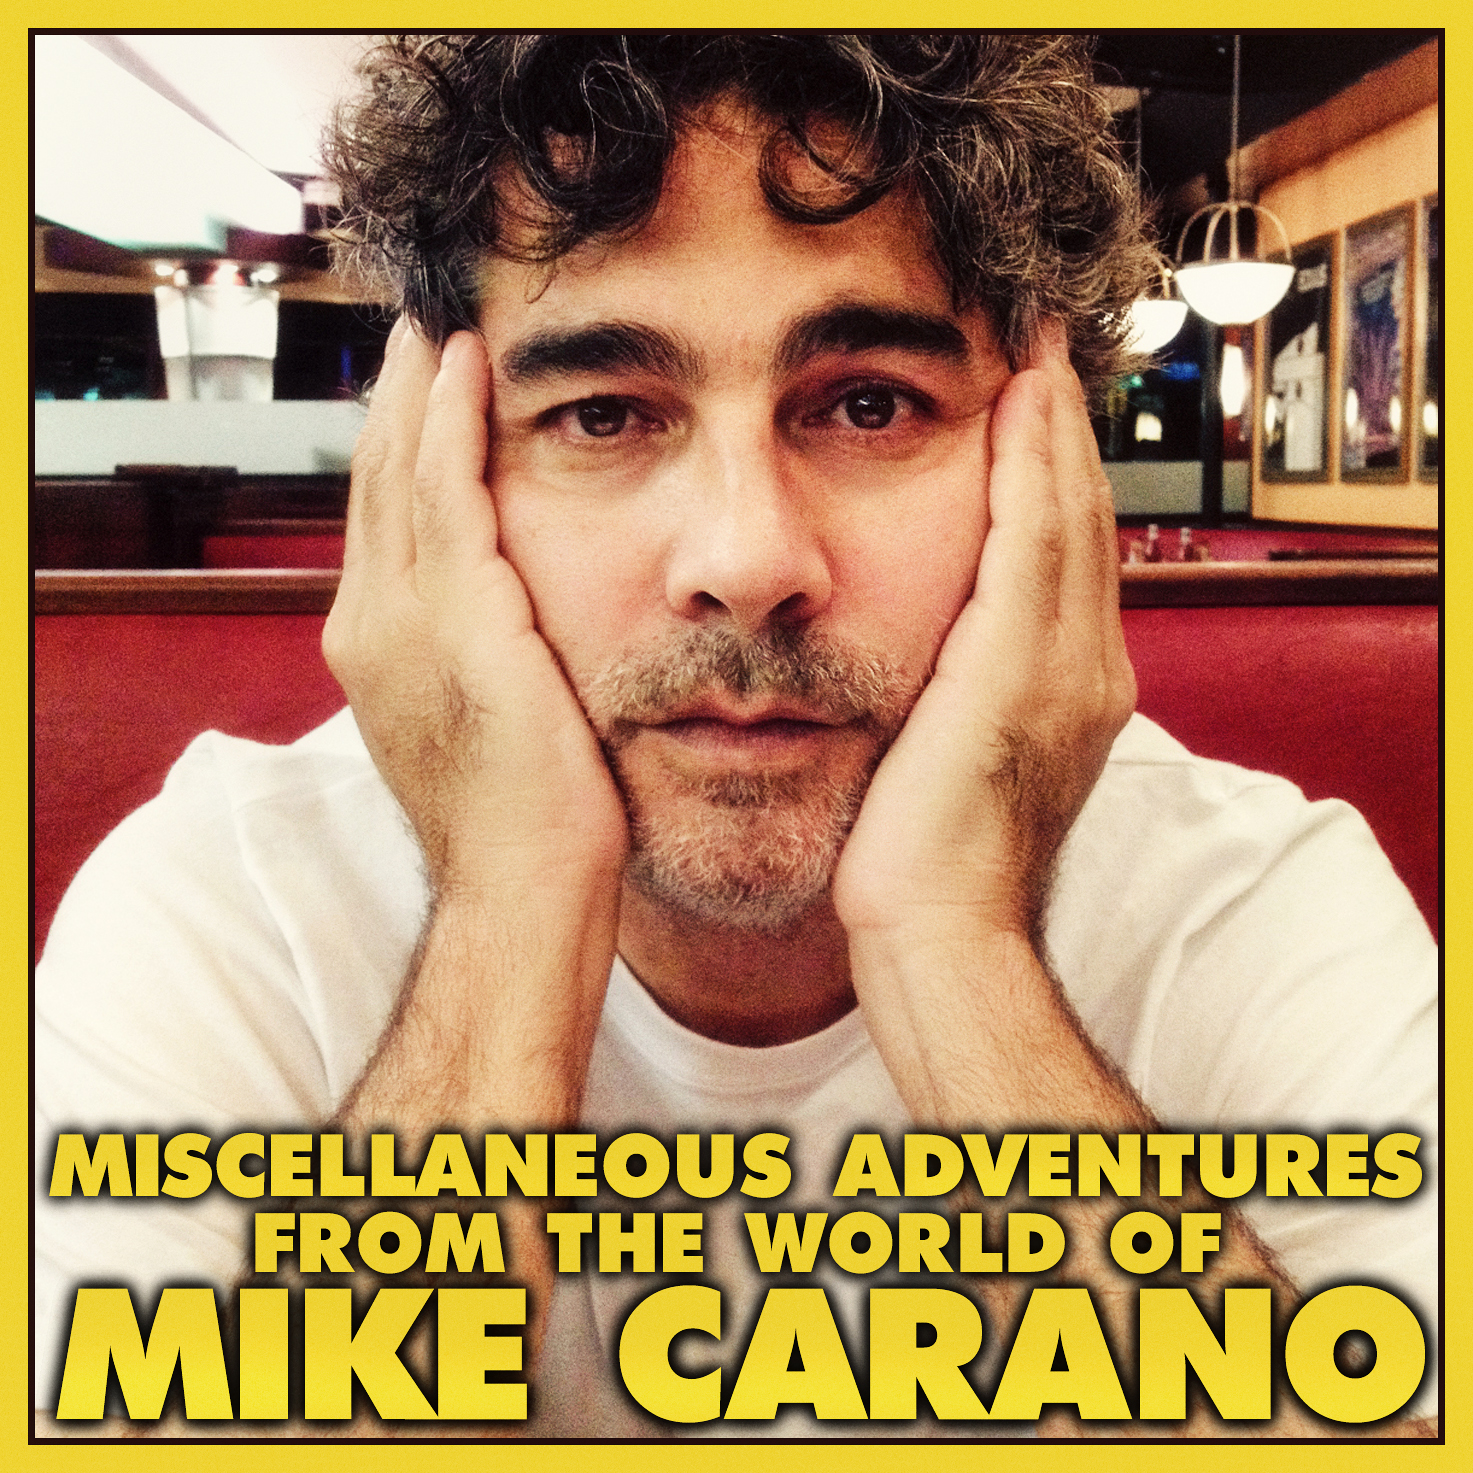 Miscellaneous Adventures from the World of Mike Carano